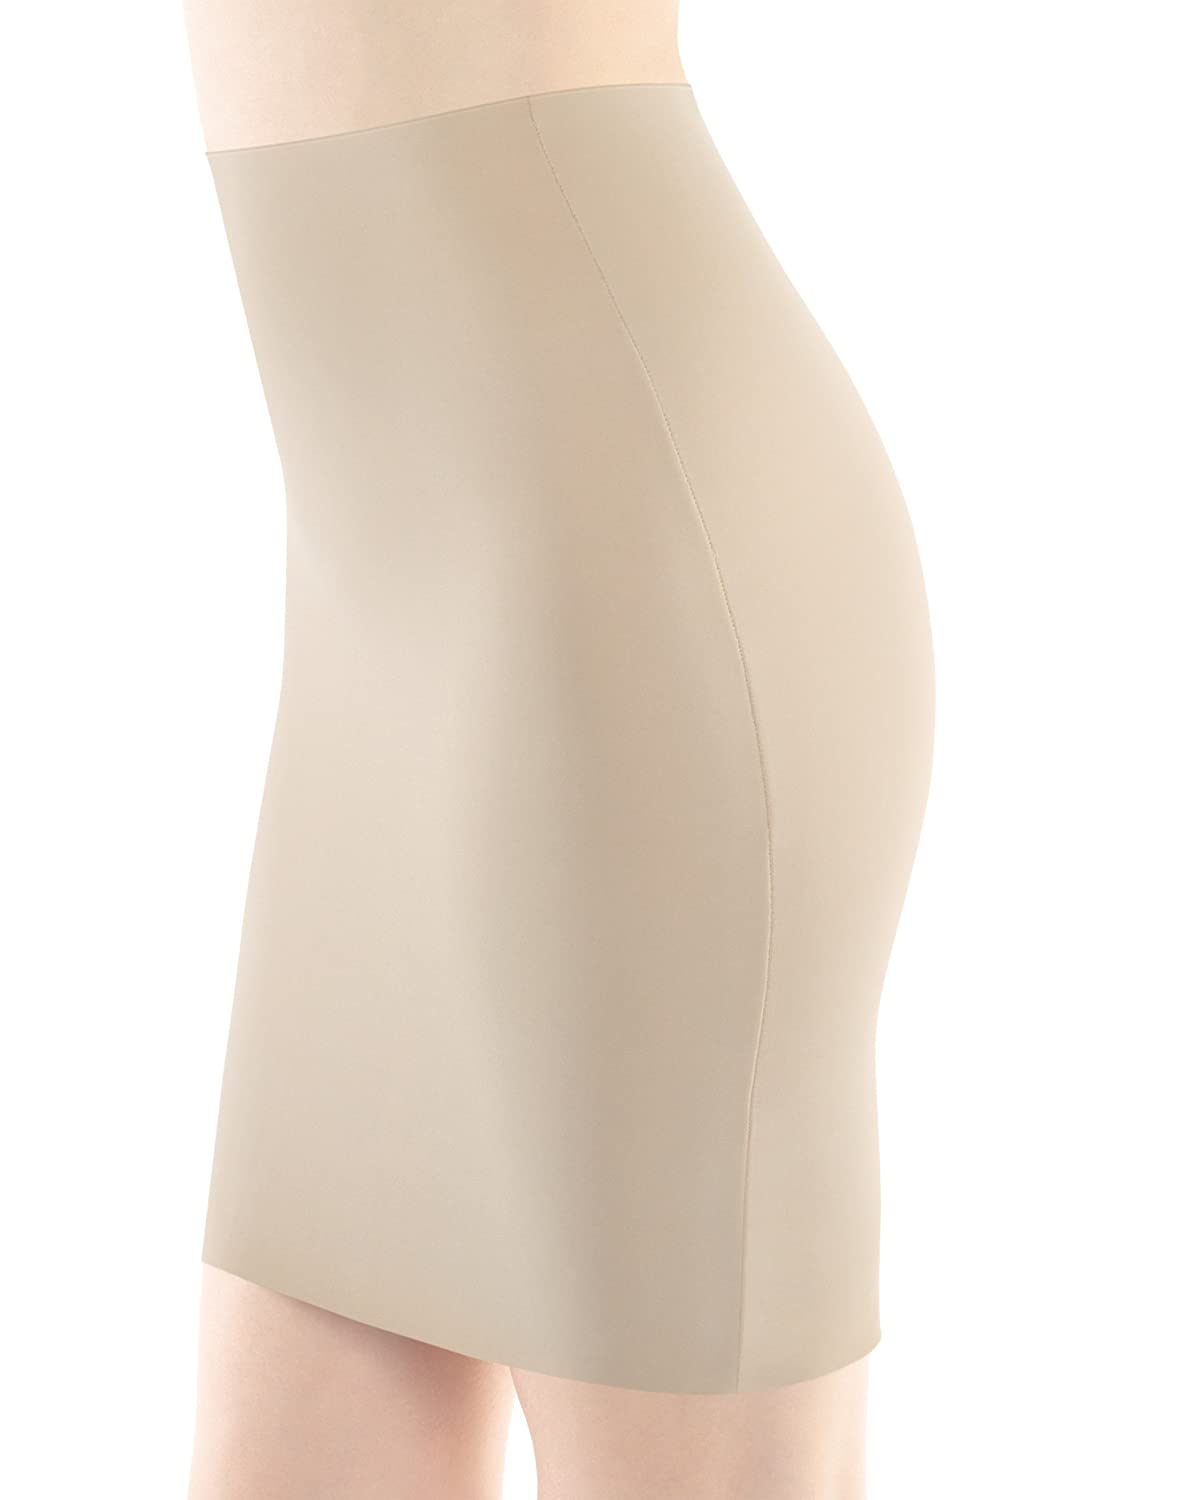 465e519ecc806 Assets Red Hot Label By Spanx   Fantastic Firmers Shaping Slip Skirt   Amazon.ca  Clothing   Accessories